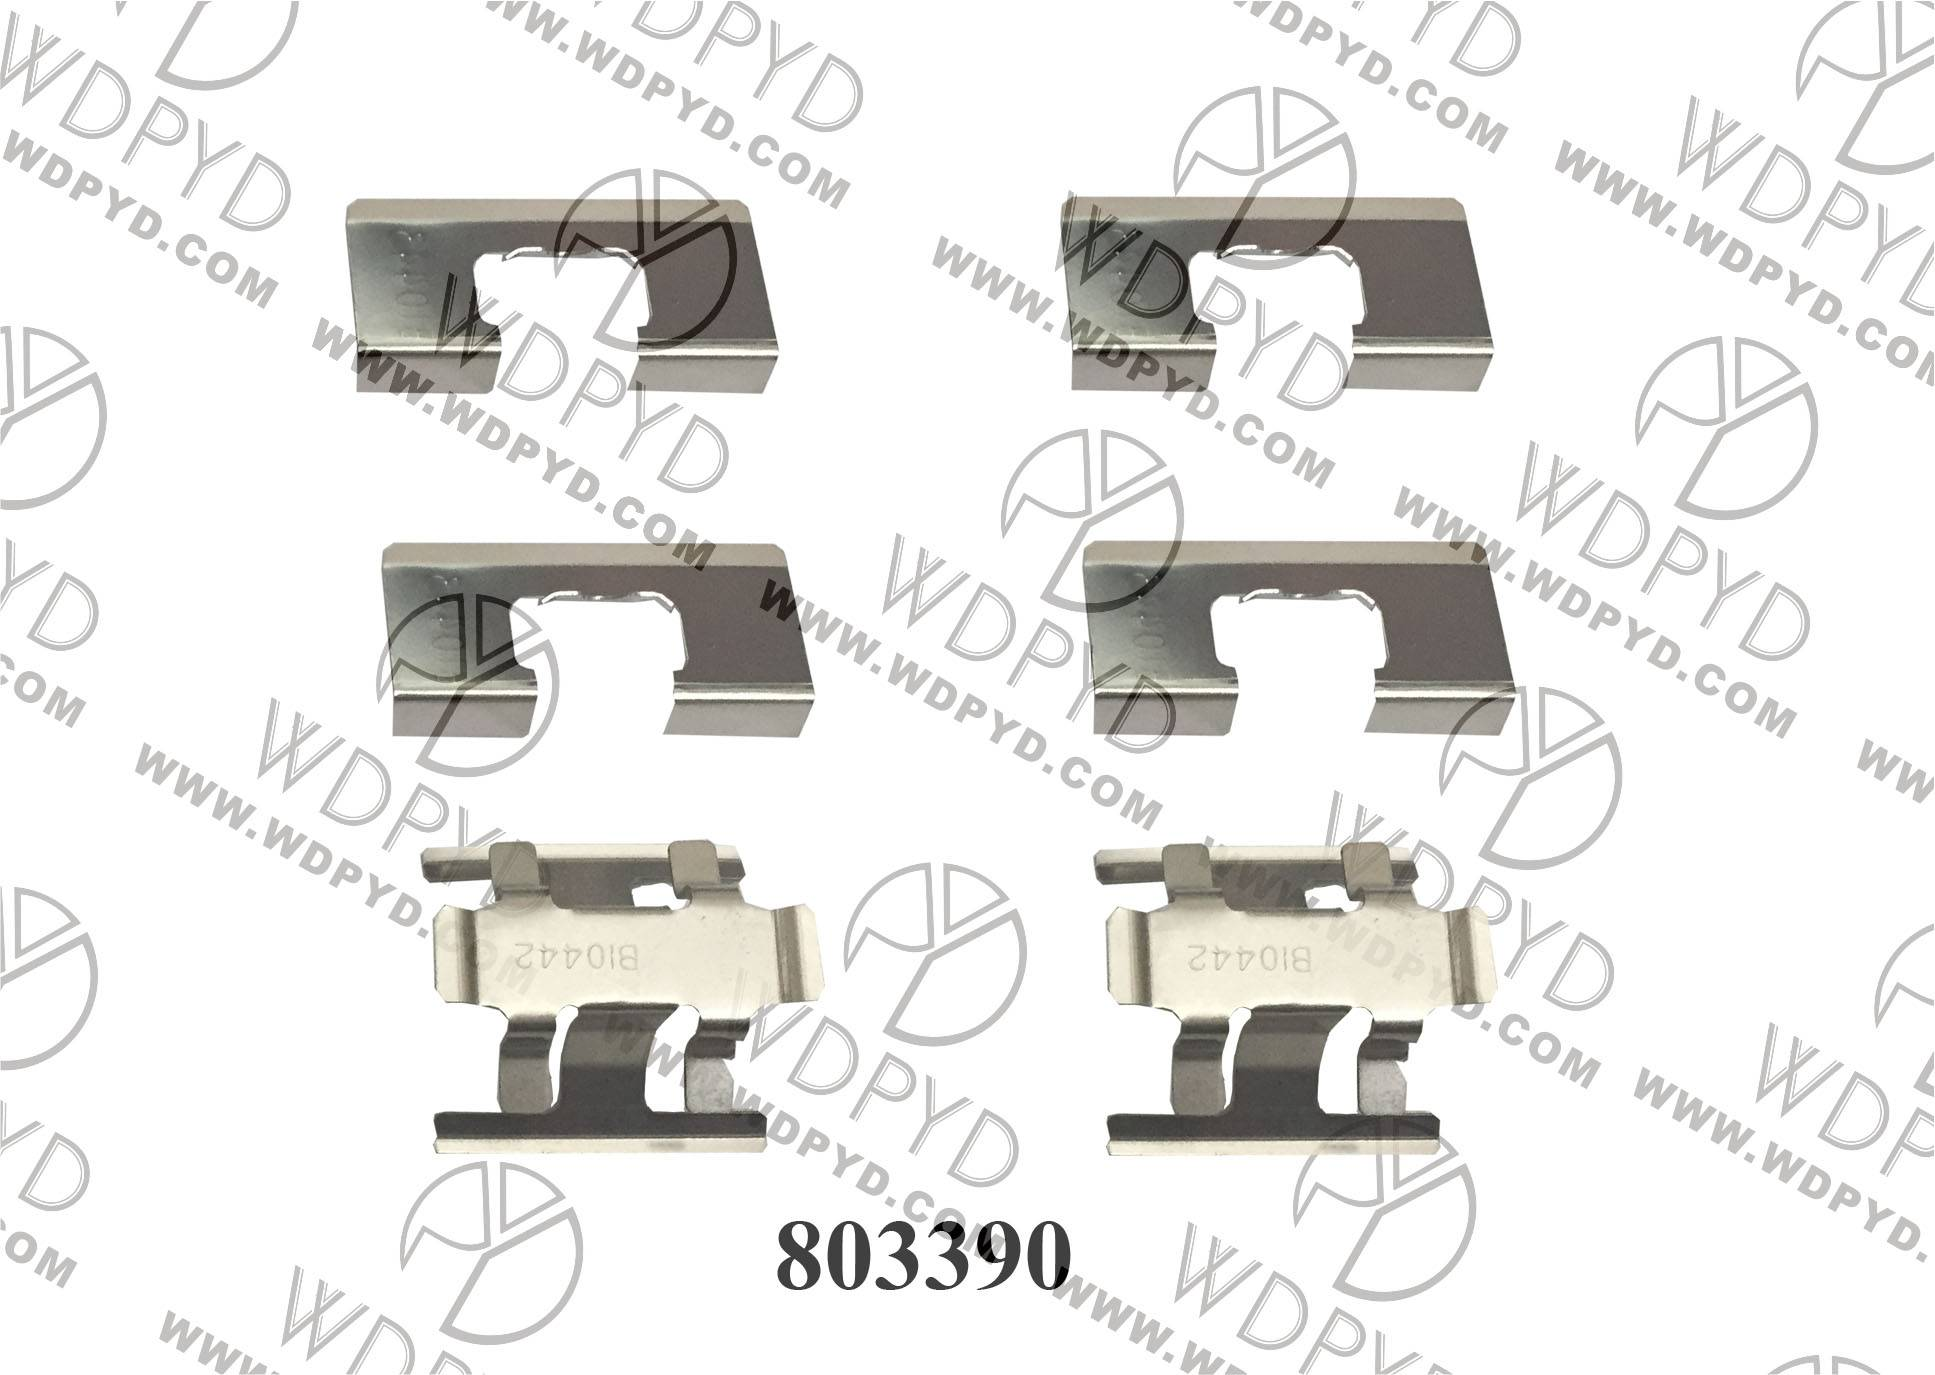 2015 hot  sales  Wellde Disc Brake pad Clip 803390